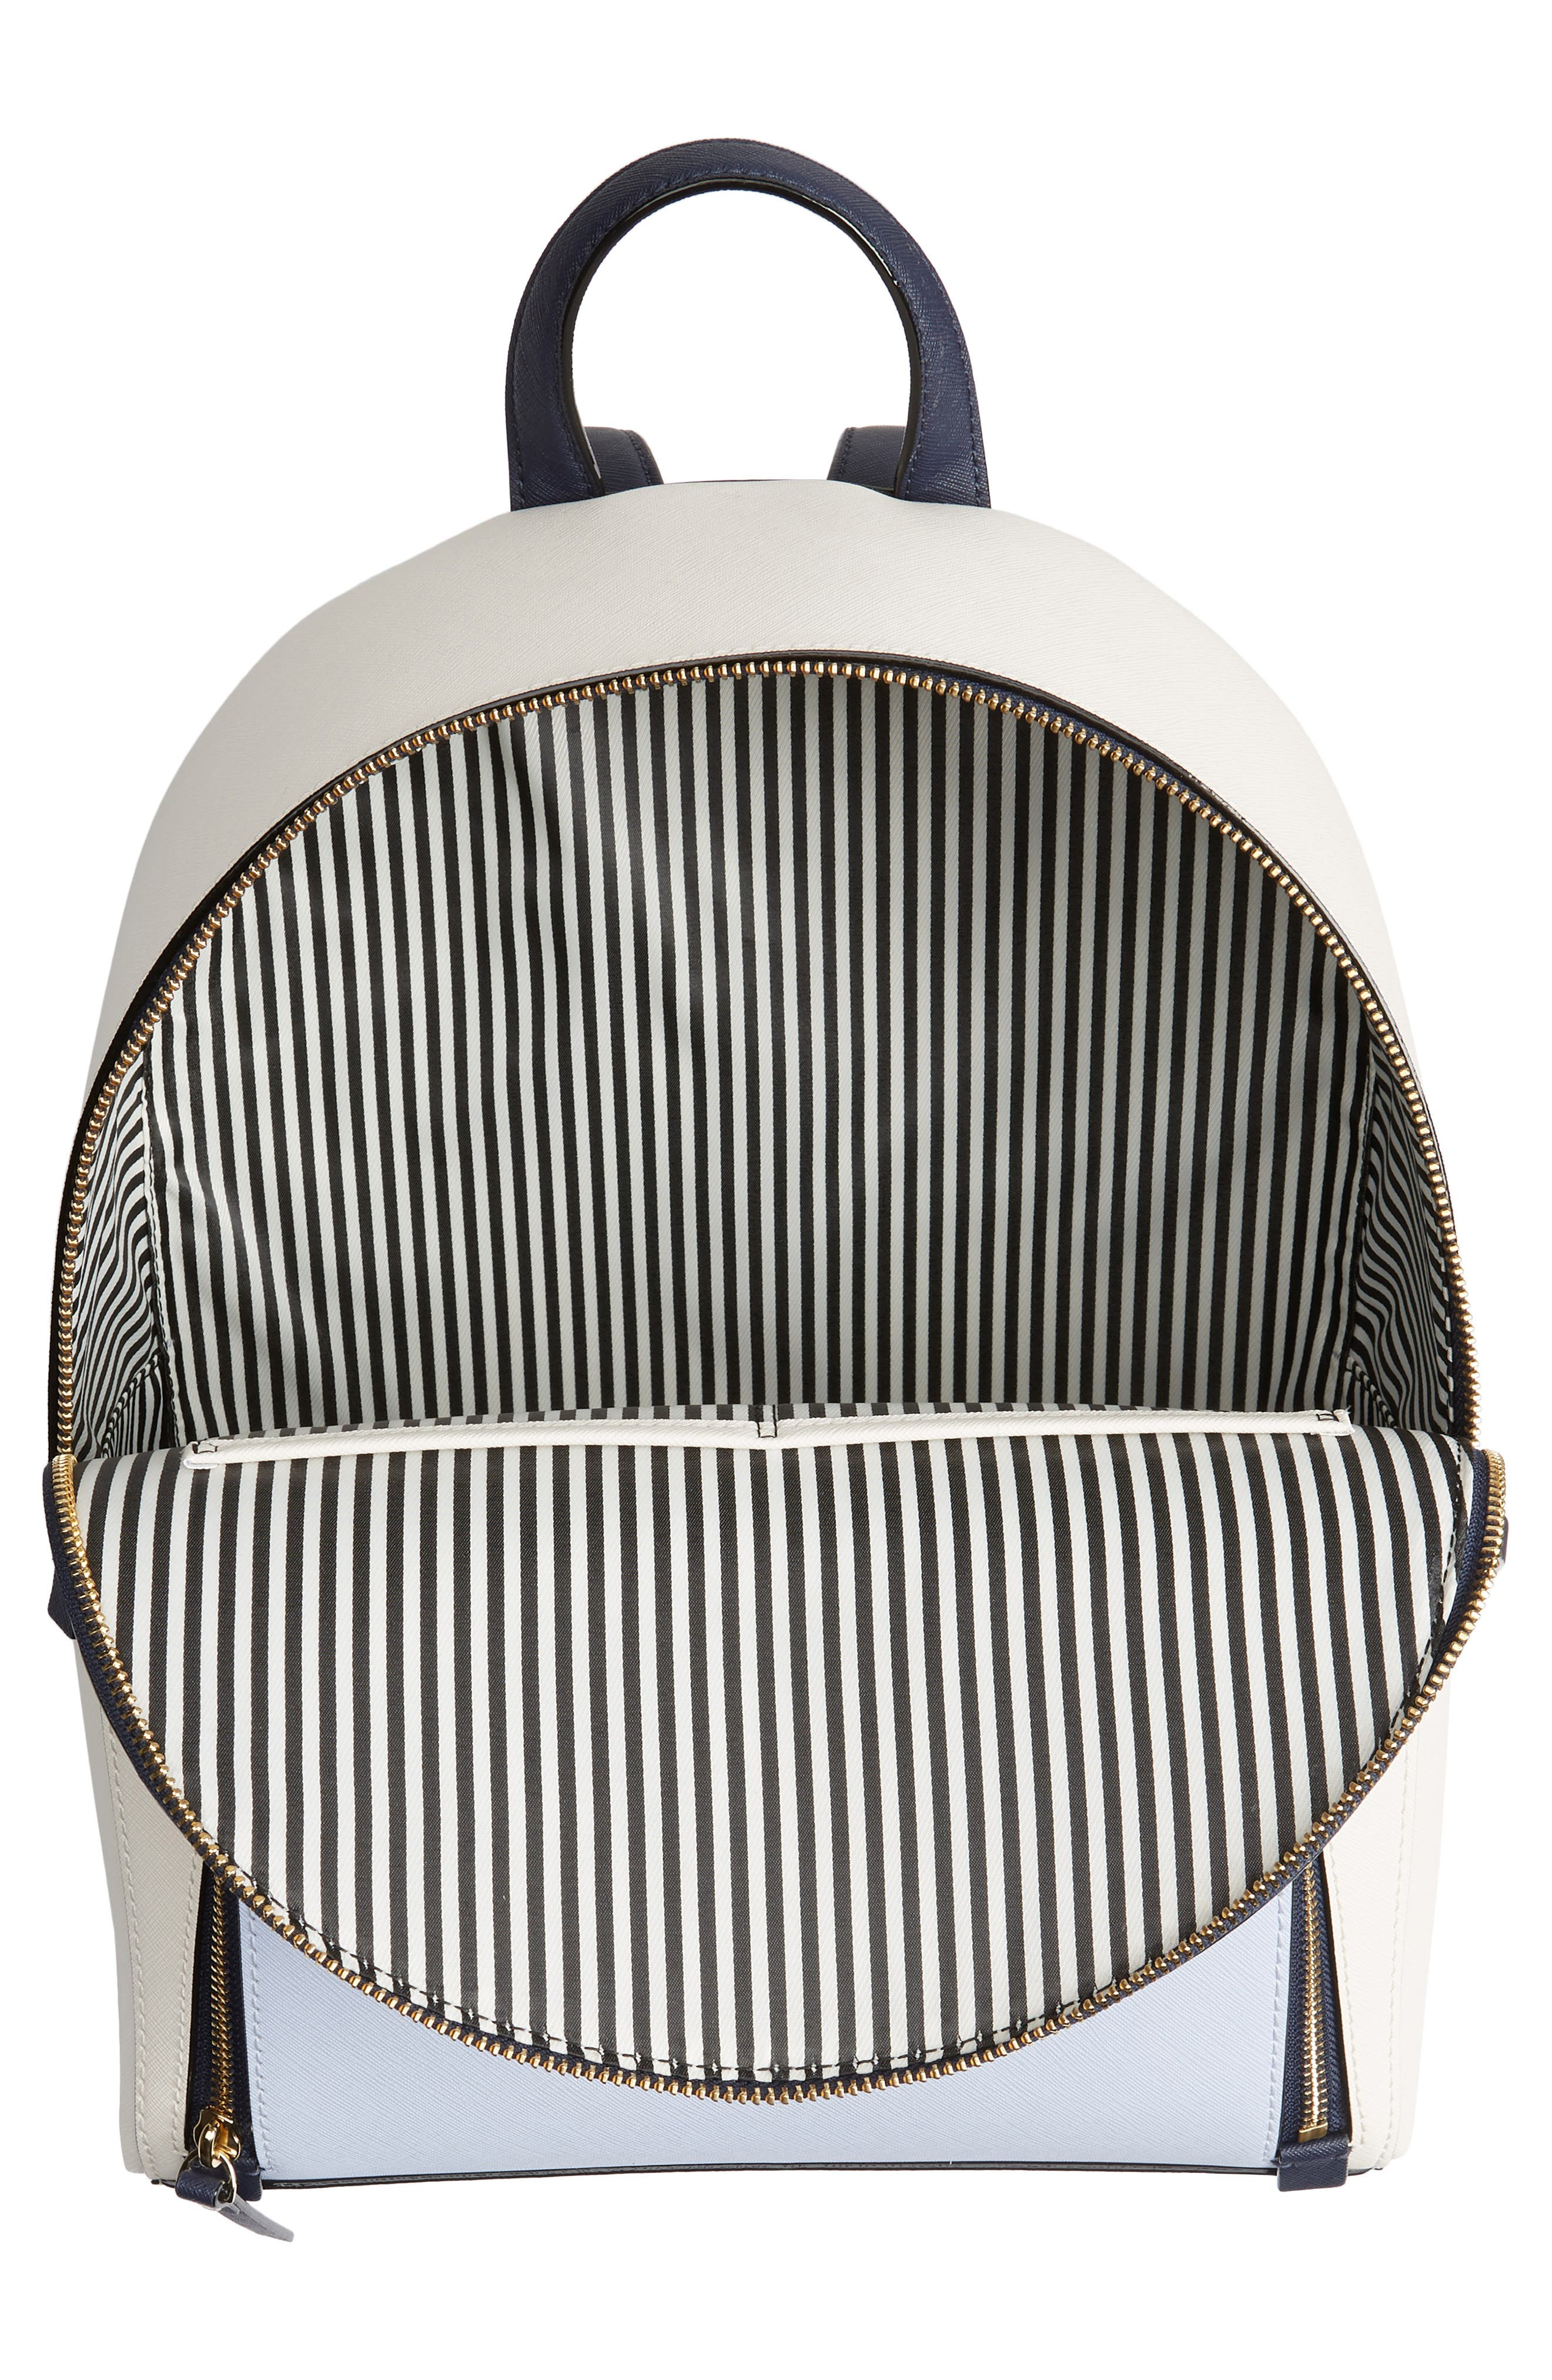 cameron street – hartley leather backpack,                             Alternate thumbnail 4, color,                             Cement/ Morning Multi